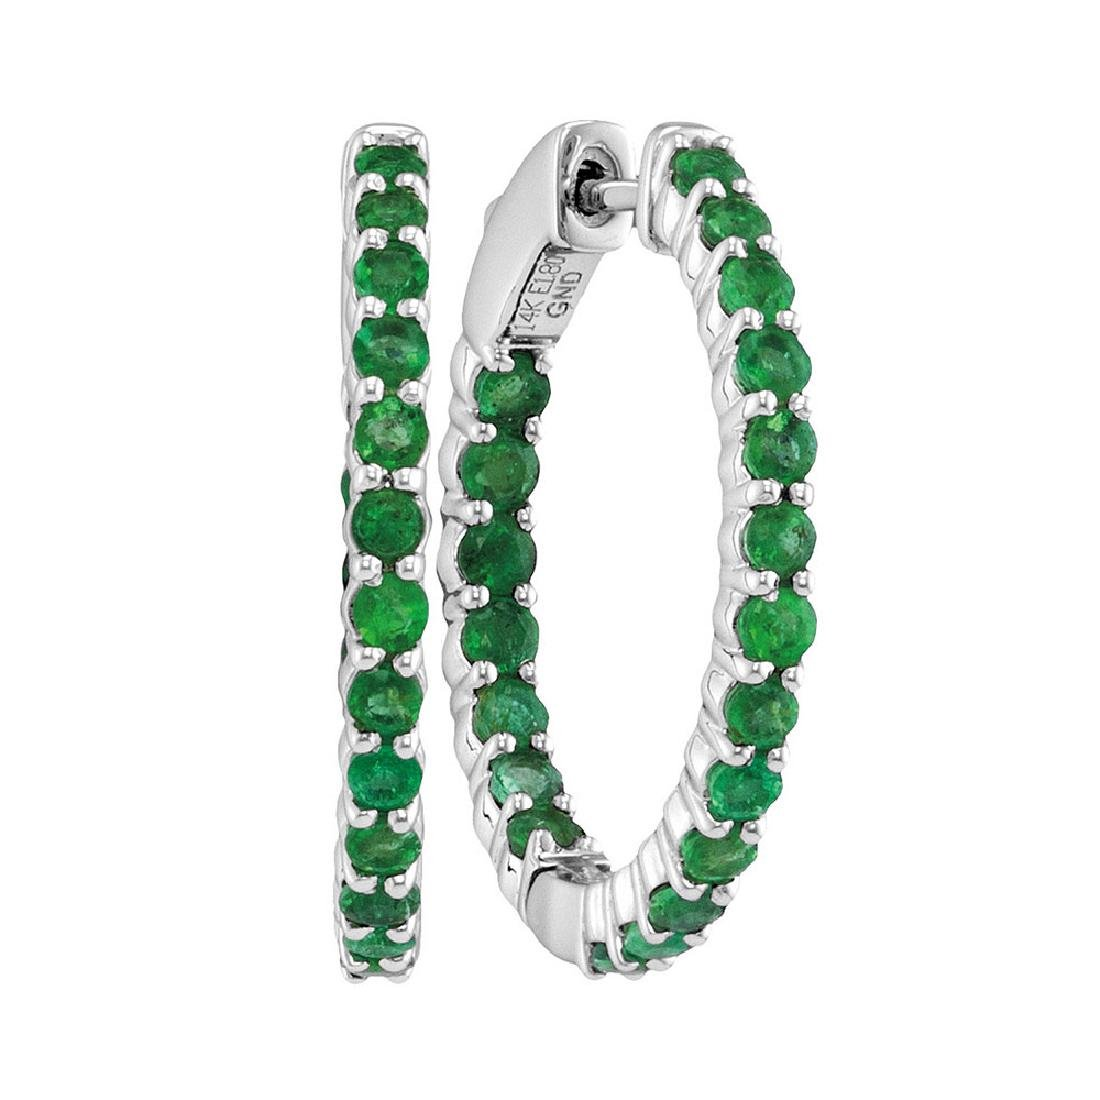 2 CTW Emerald In/Out Hoop Earrings 14KT White Gold -